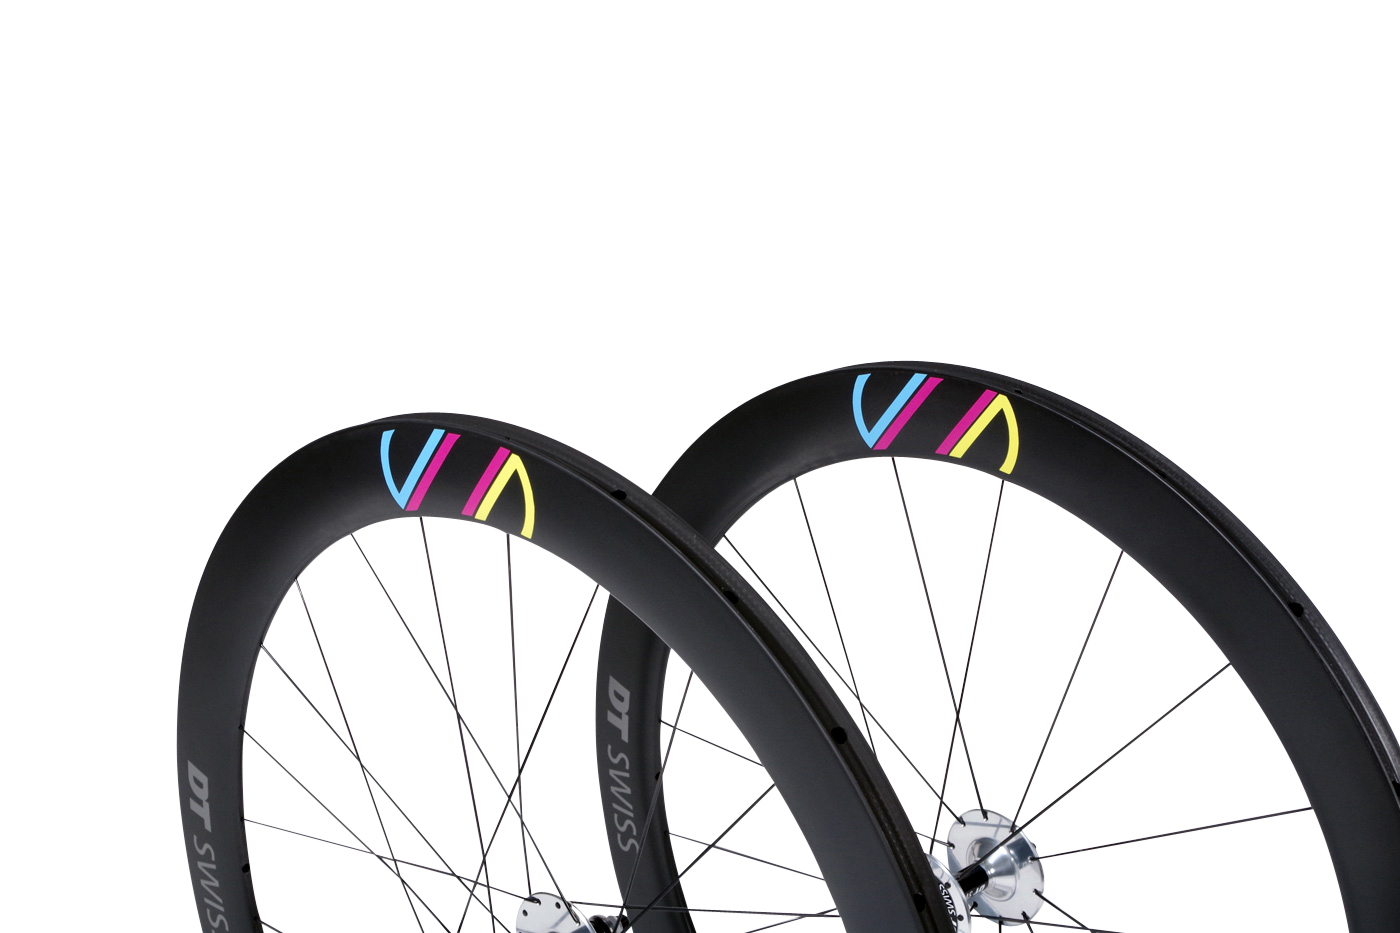 DT Swiss team 02 - DT Swiss wheels - Now available at 8bar bikes